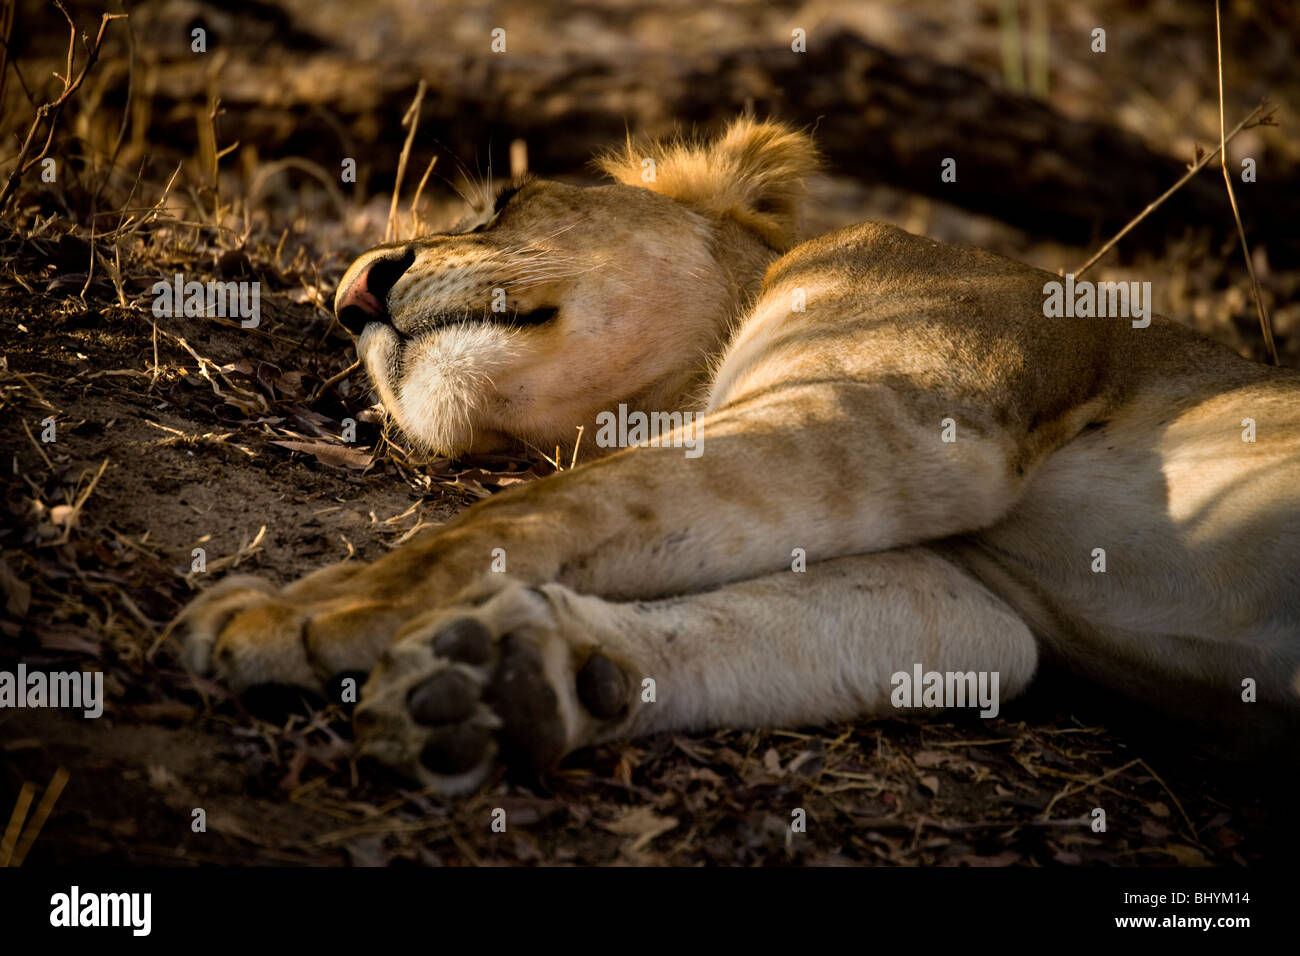 Sleeping lion, Selous Game Reserve, Tanzania, East Africa - Stock Image